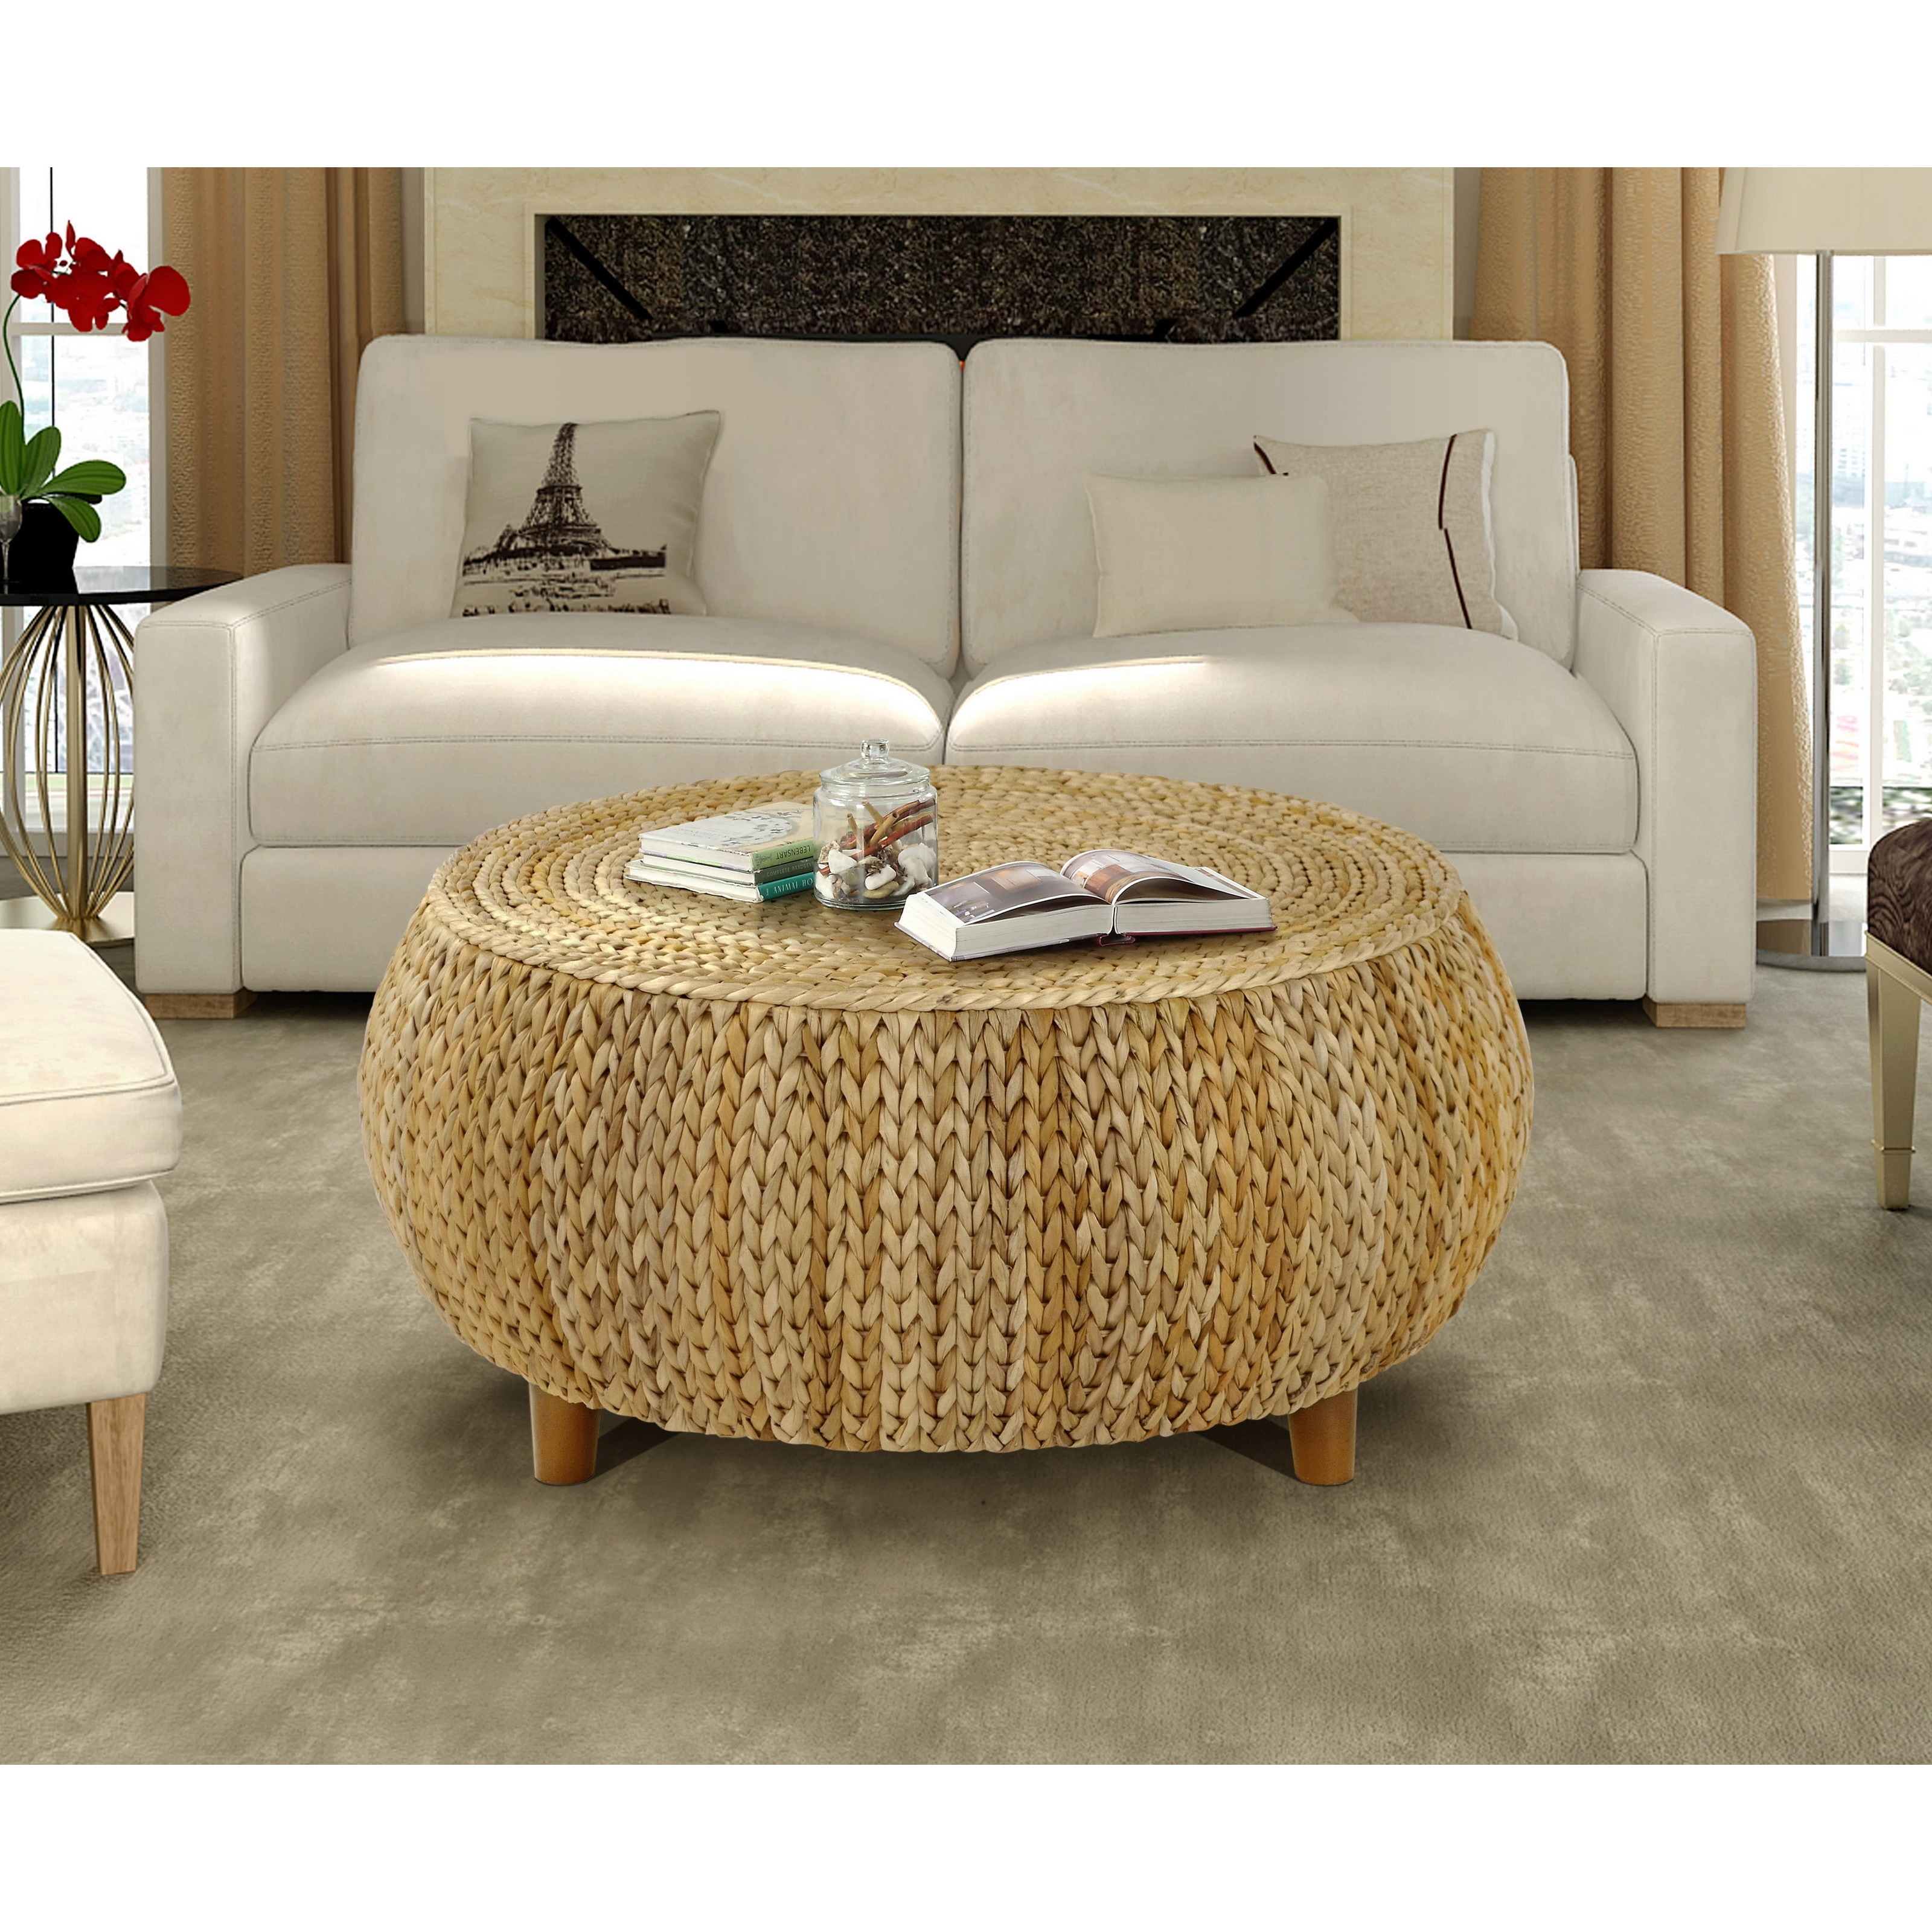 Havenside Home Eastport Low Round Coffee Table Free Shipping Today 20931381